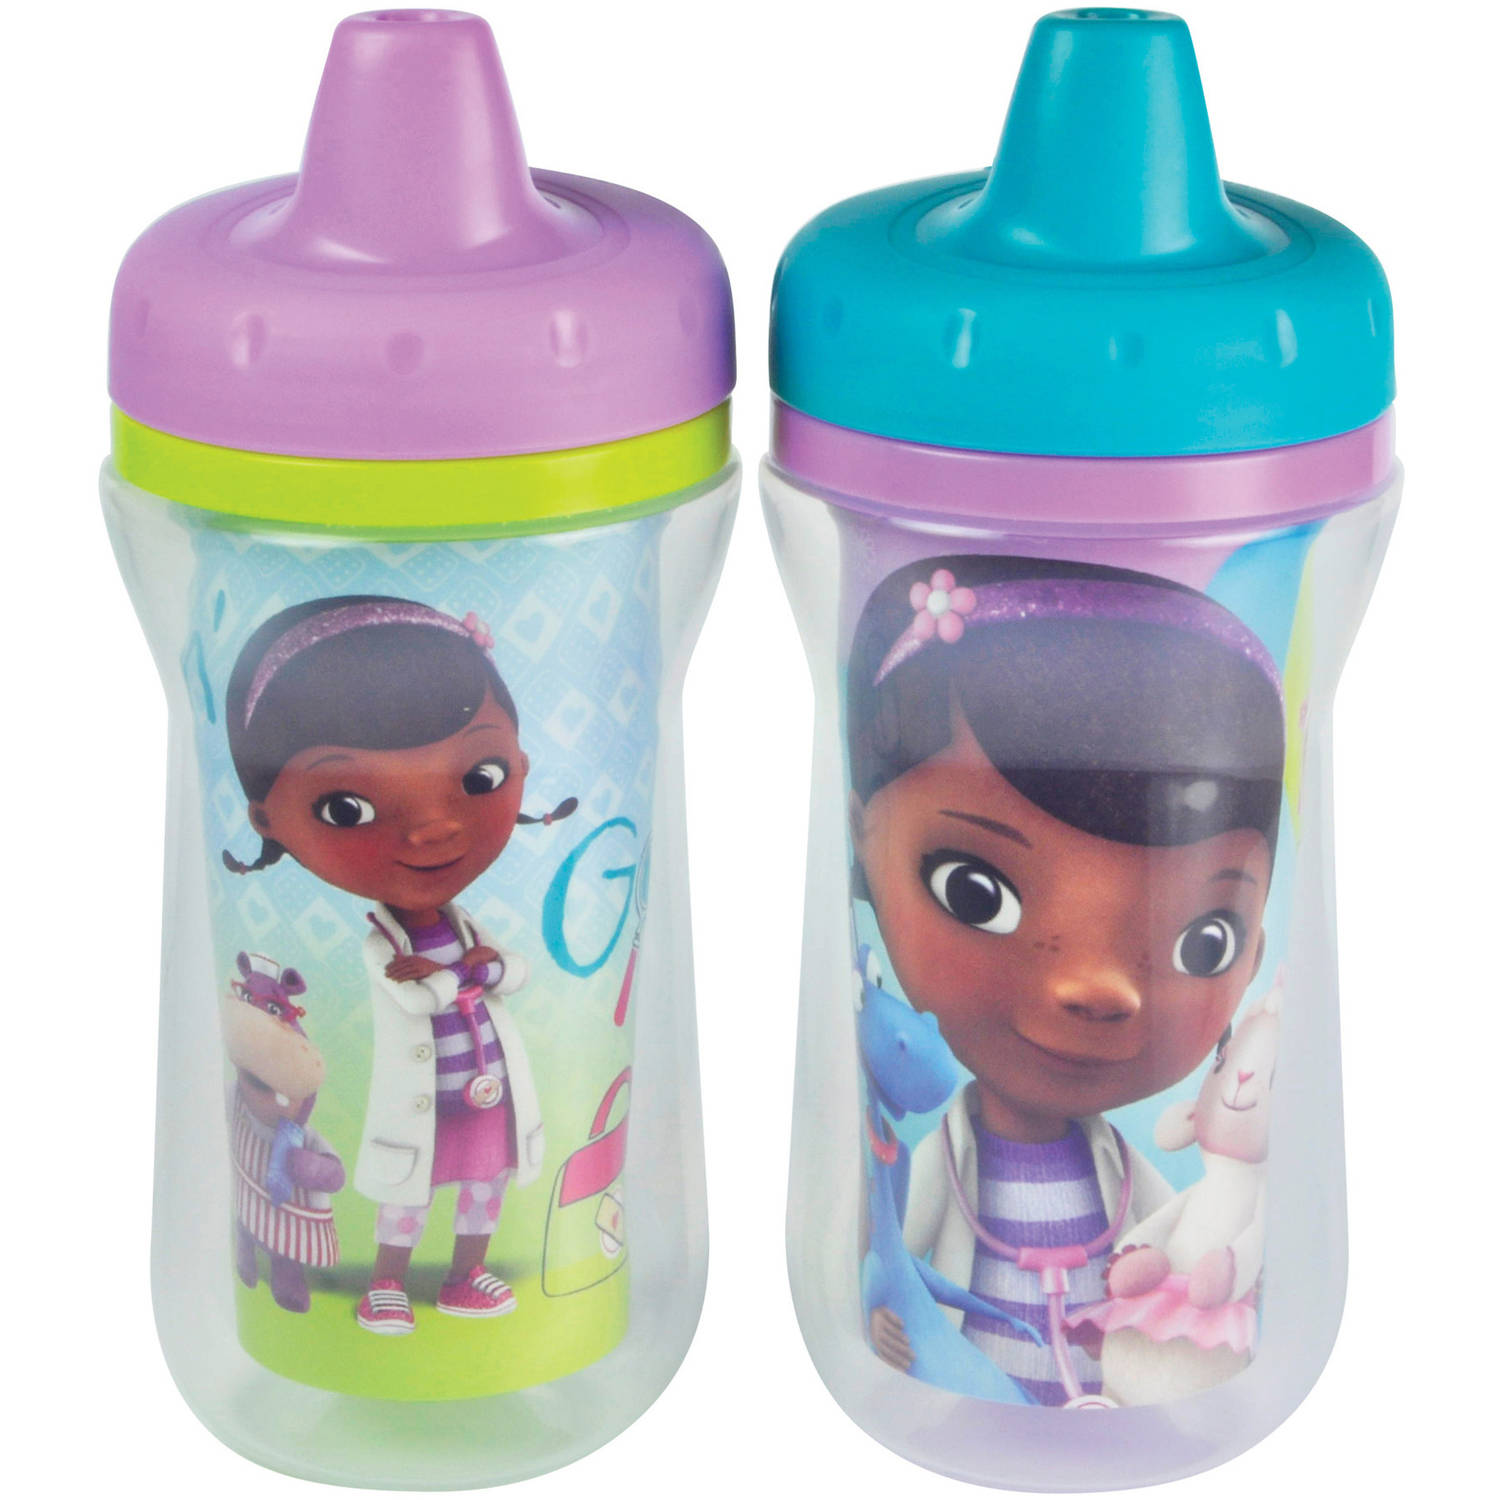 The First Years Disney Junior Doc McStuffins Insulated Sippy Cup, BPA-Free, 9 oz, 2pk